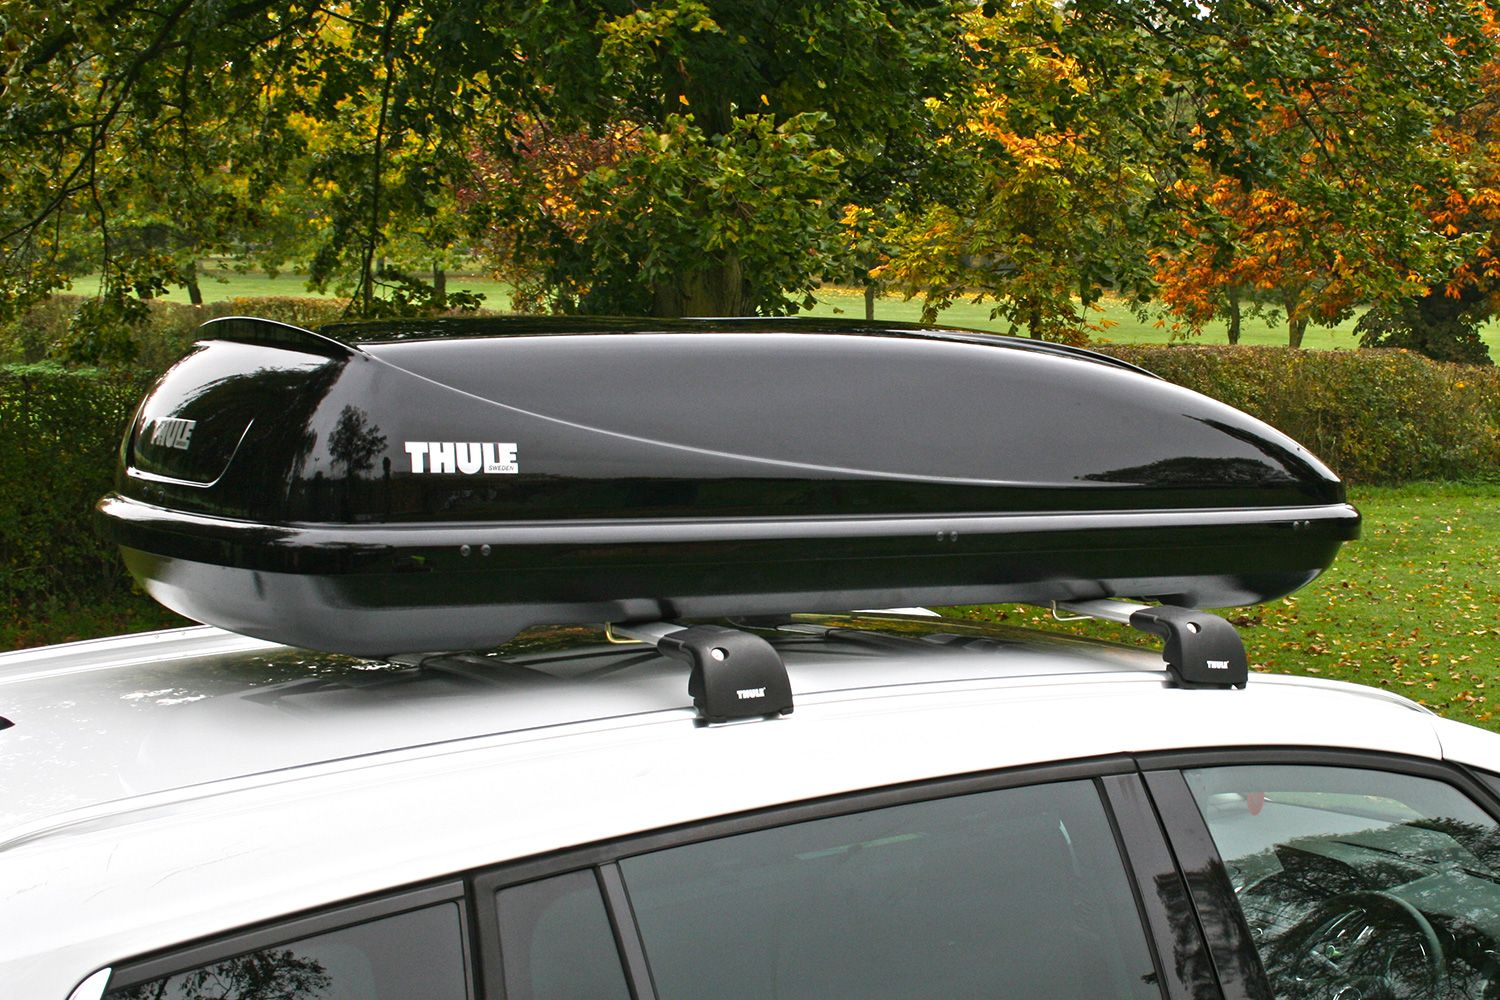 7098072043c Thule Roof Box Ocean 200 Large Capacity